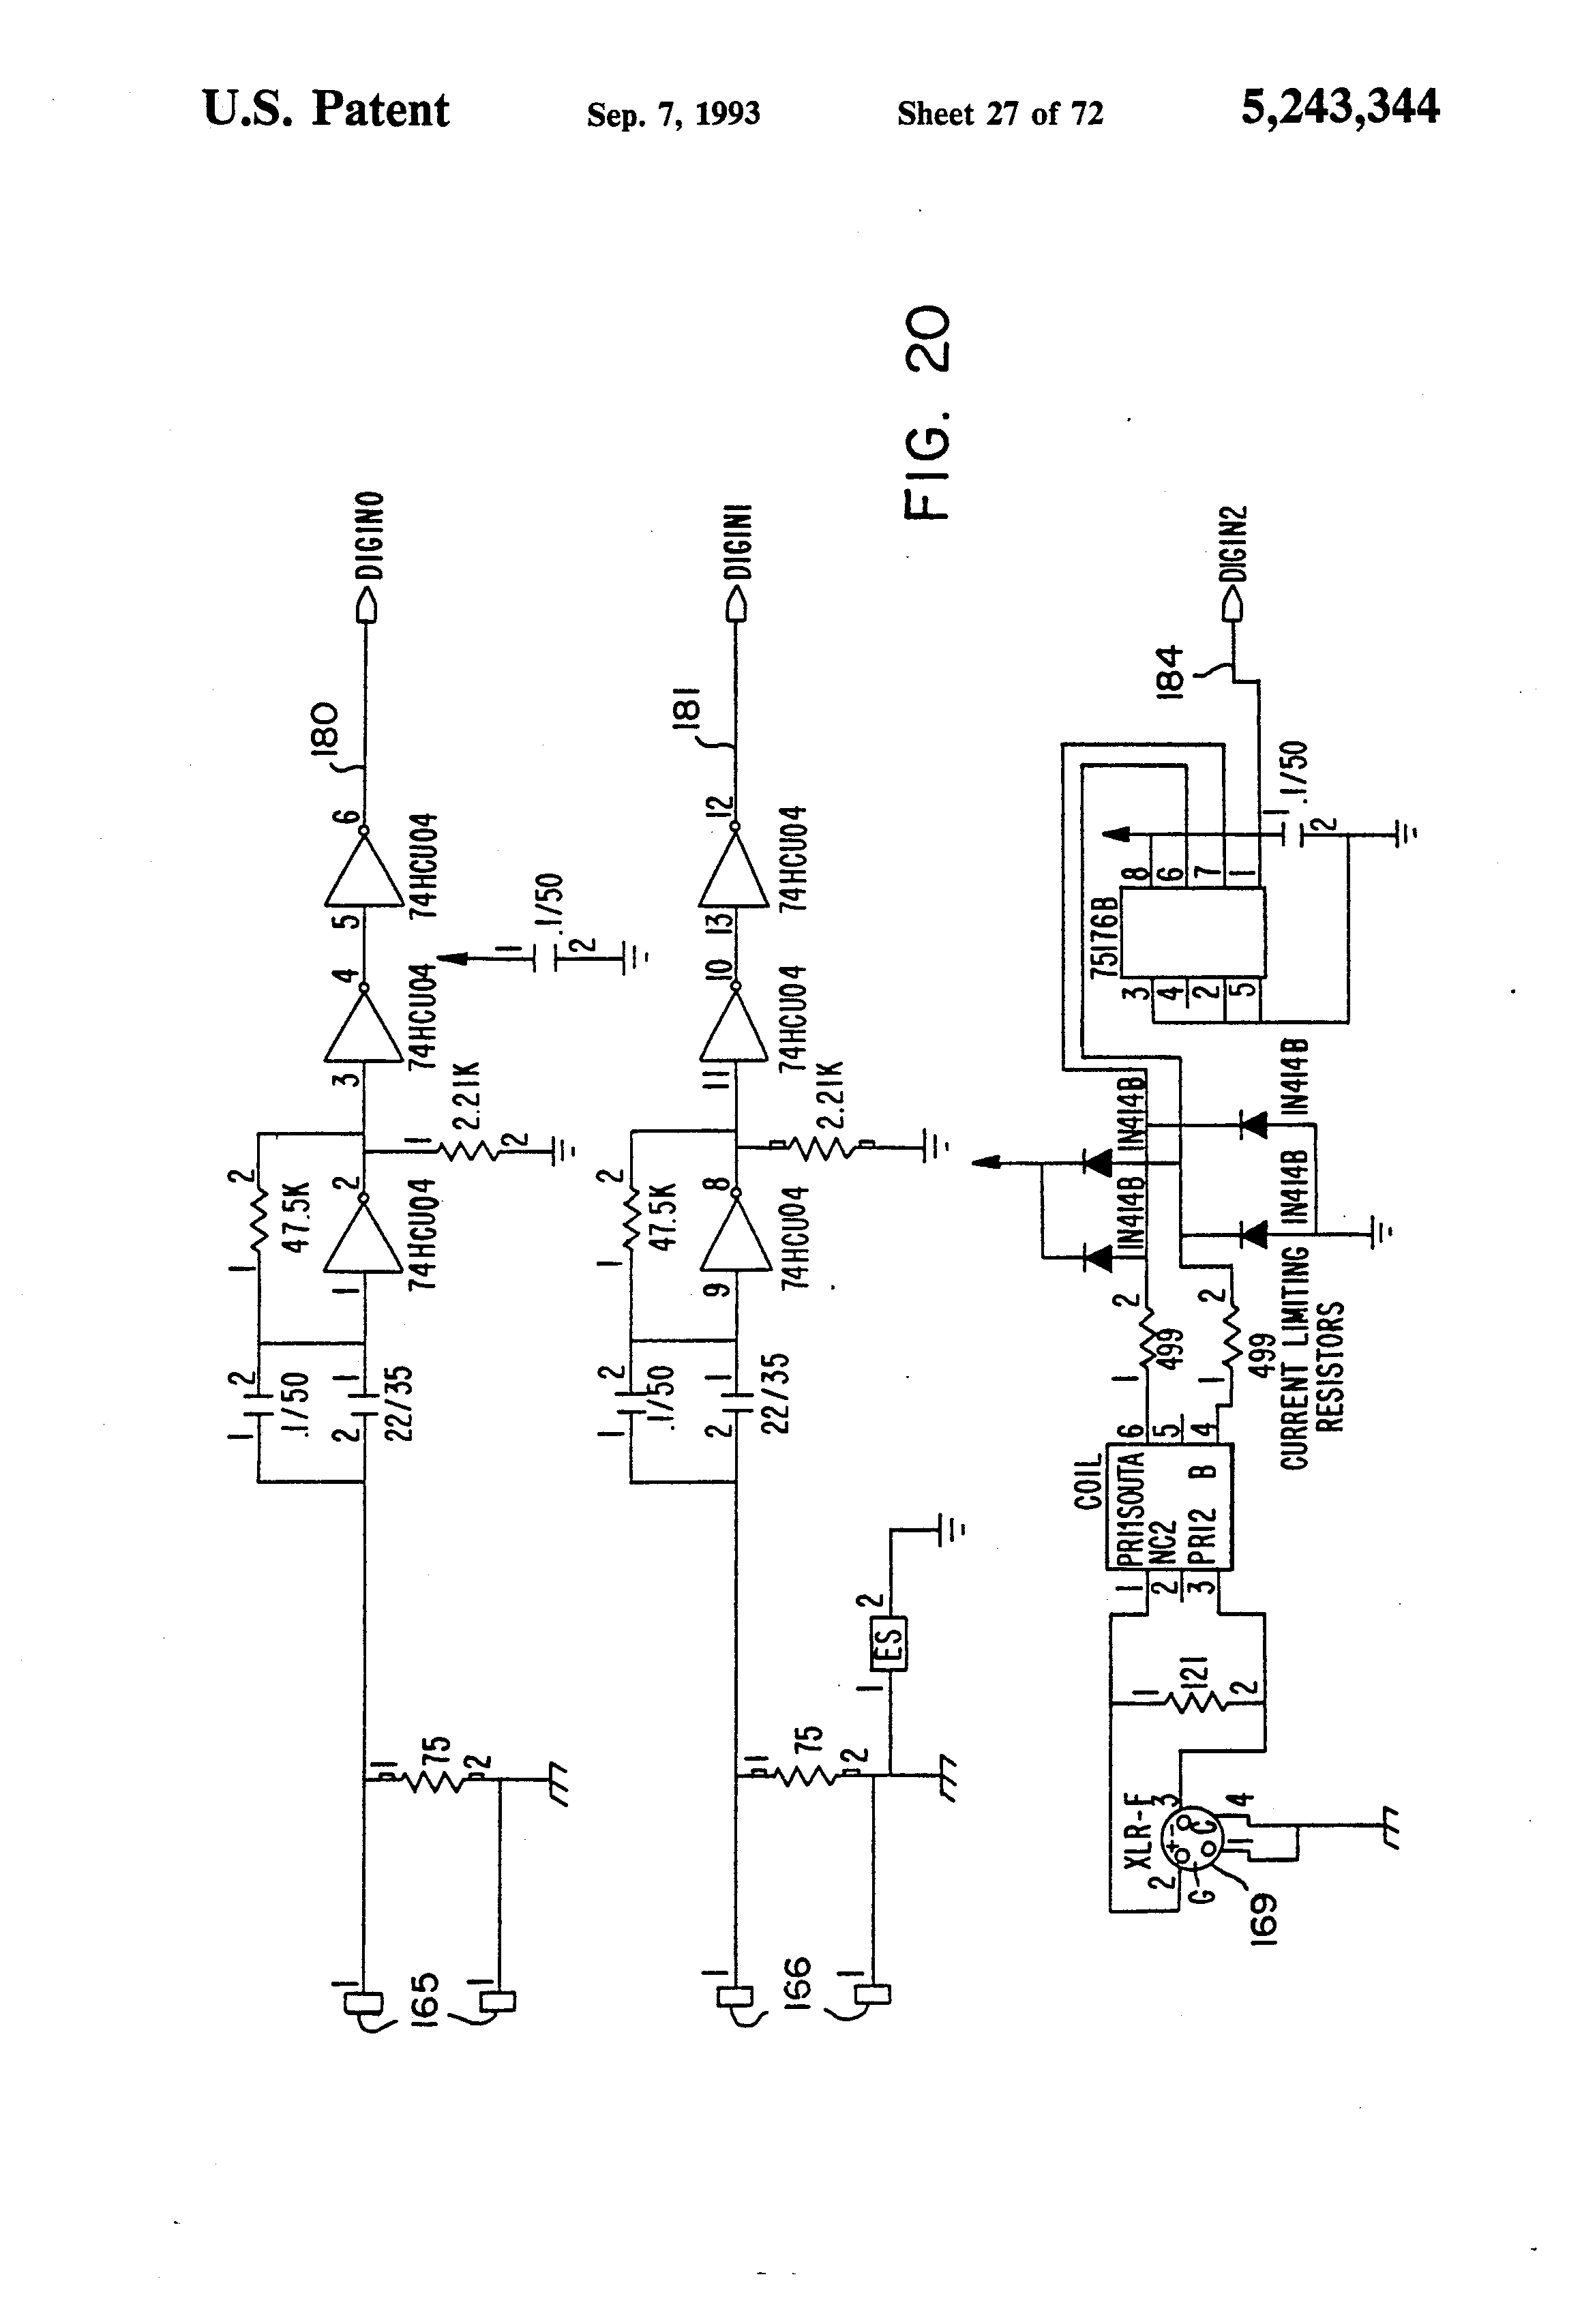 Modern Viper 3105v Wiring Diagram Ilration Electrical and